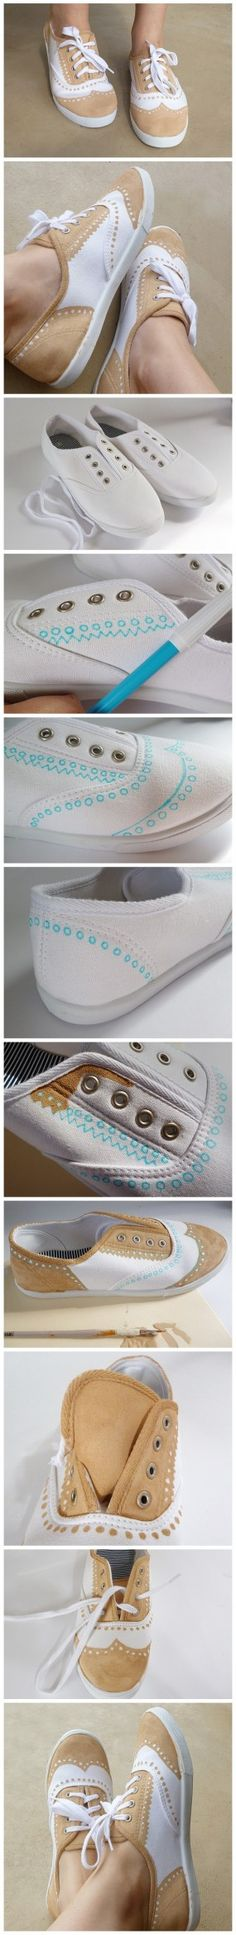 Cool tutorial for jazzing up plain white sneakers